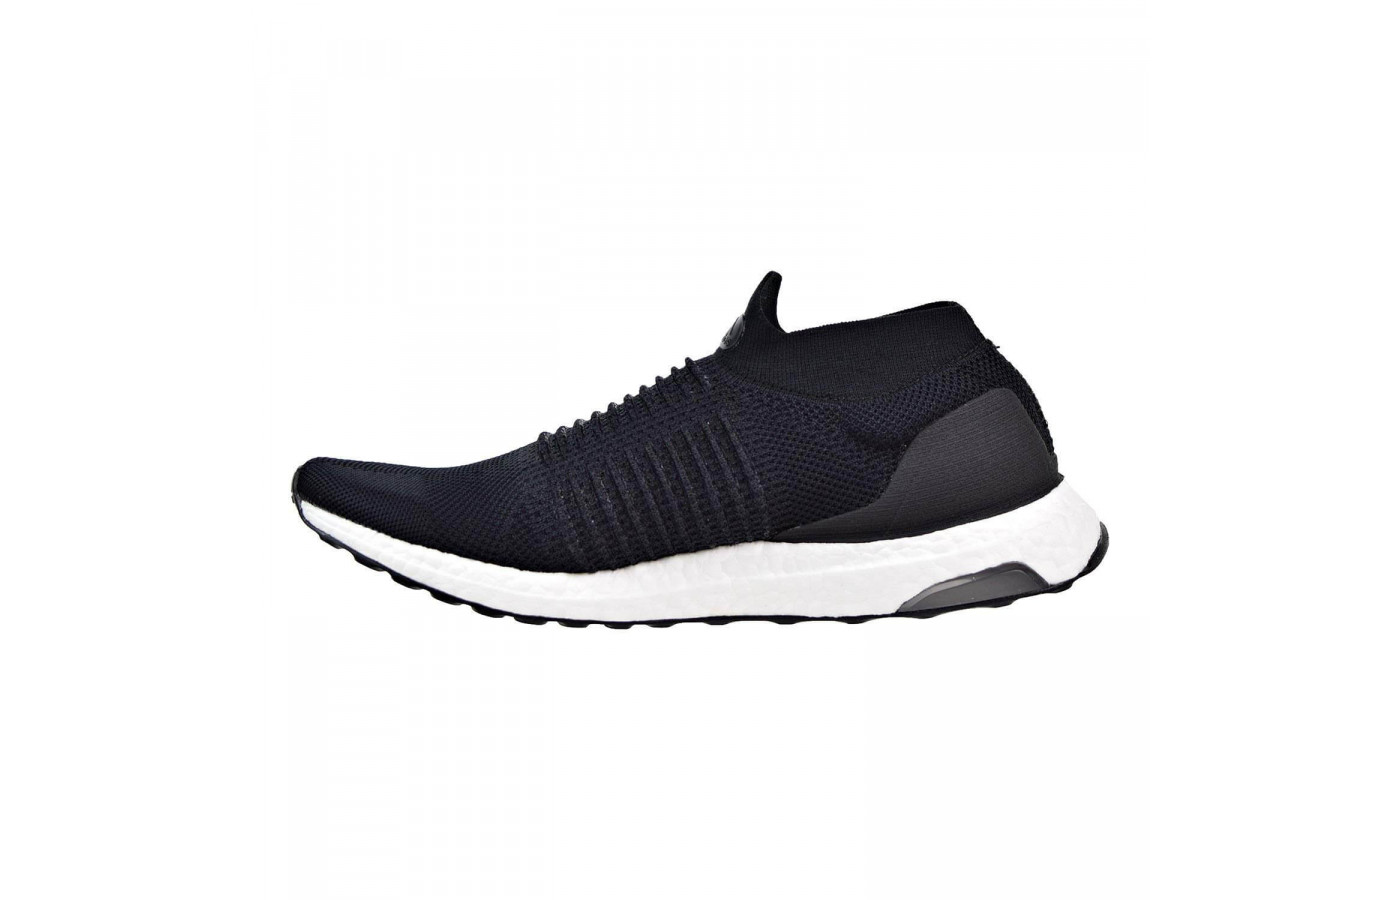 low priced dd2ba ee273 The Ultra Boost Laceless Features a heel counter for a better fit.